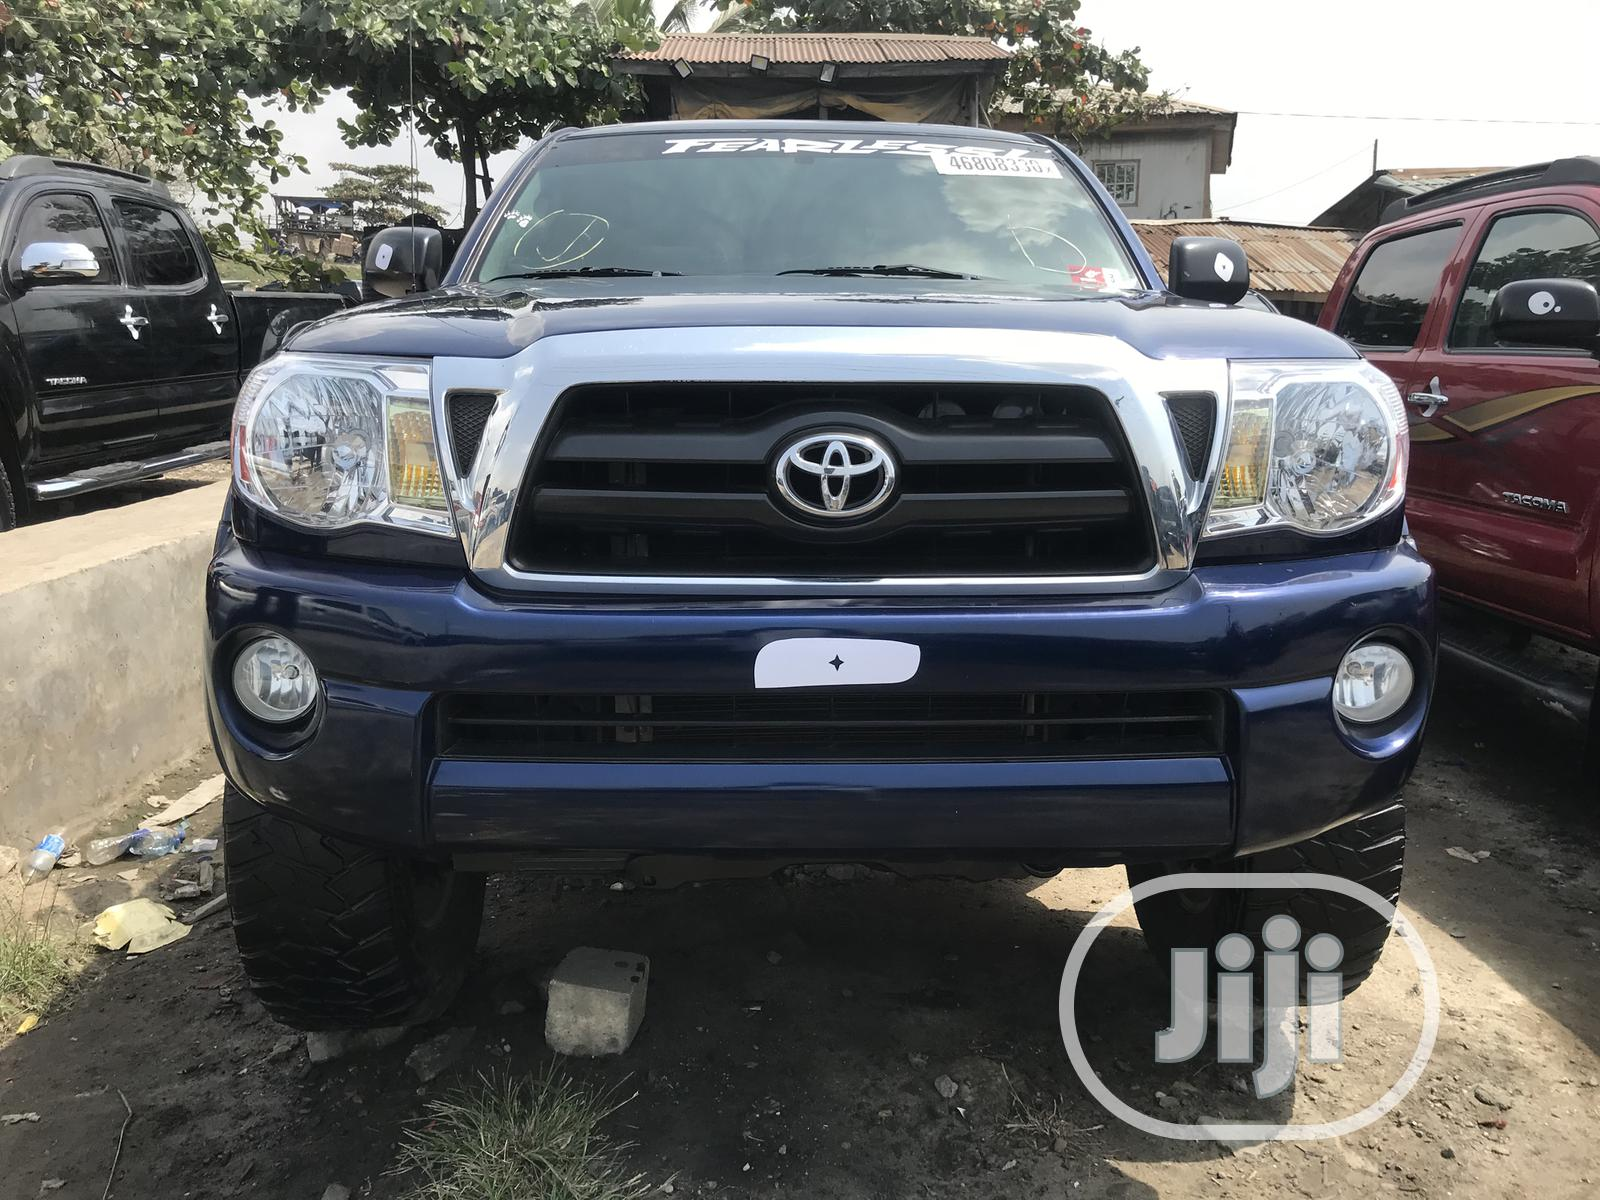 Archive: Toyota Tacoma 2008 4x4 Double Cab Blue